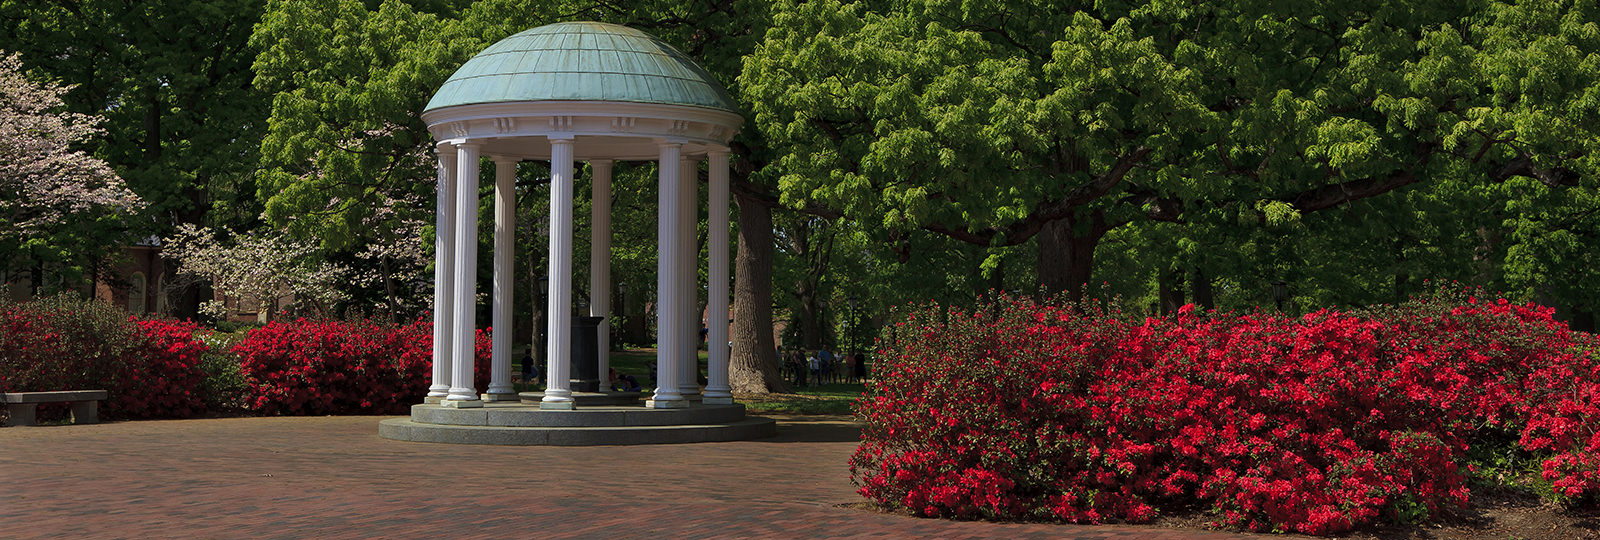 location_unc_chapelhill